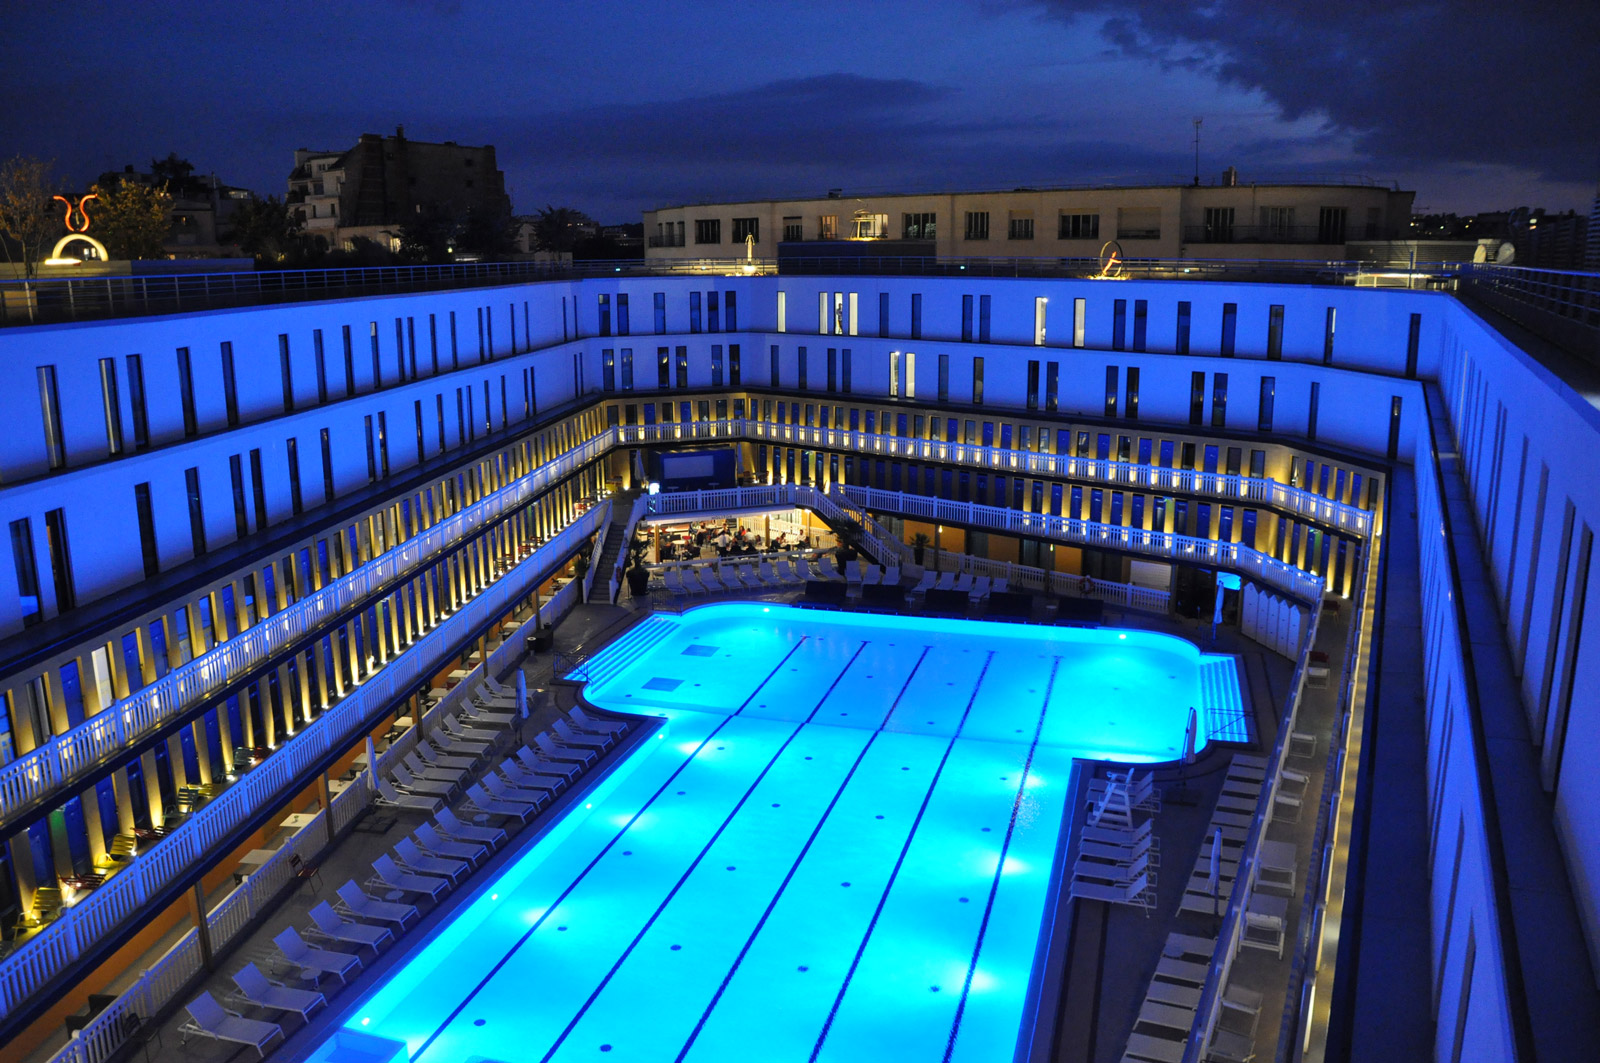 Une nuit au molitor le so girly blog for Piscine molitor hotel